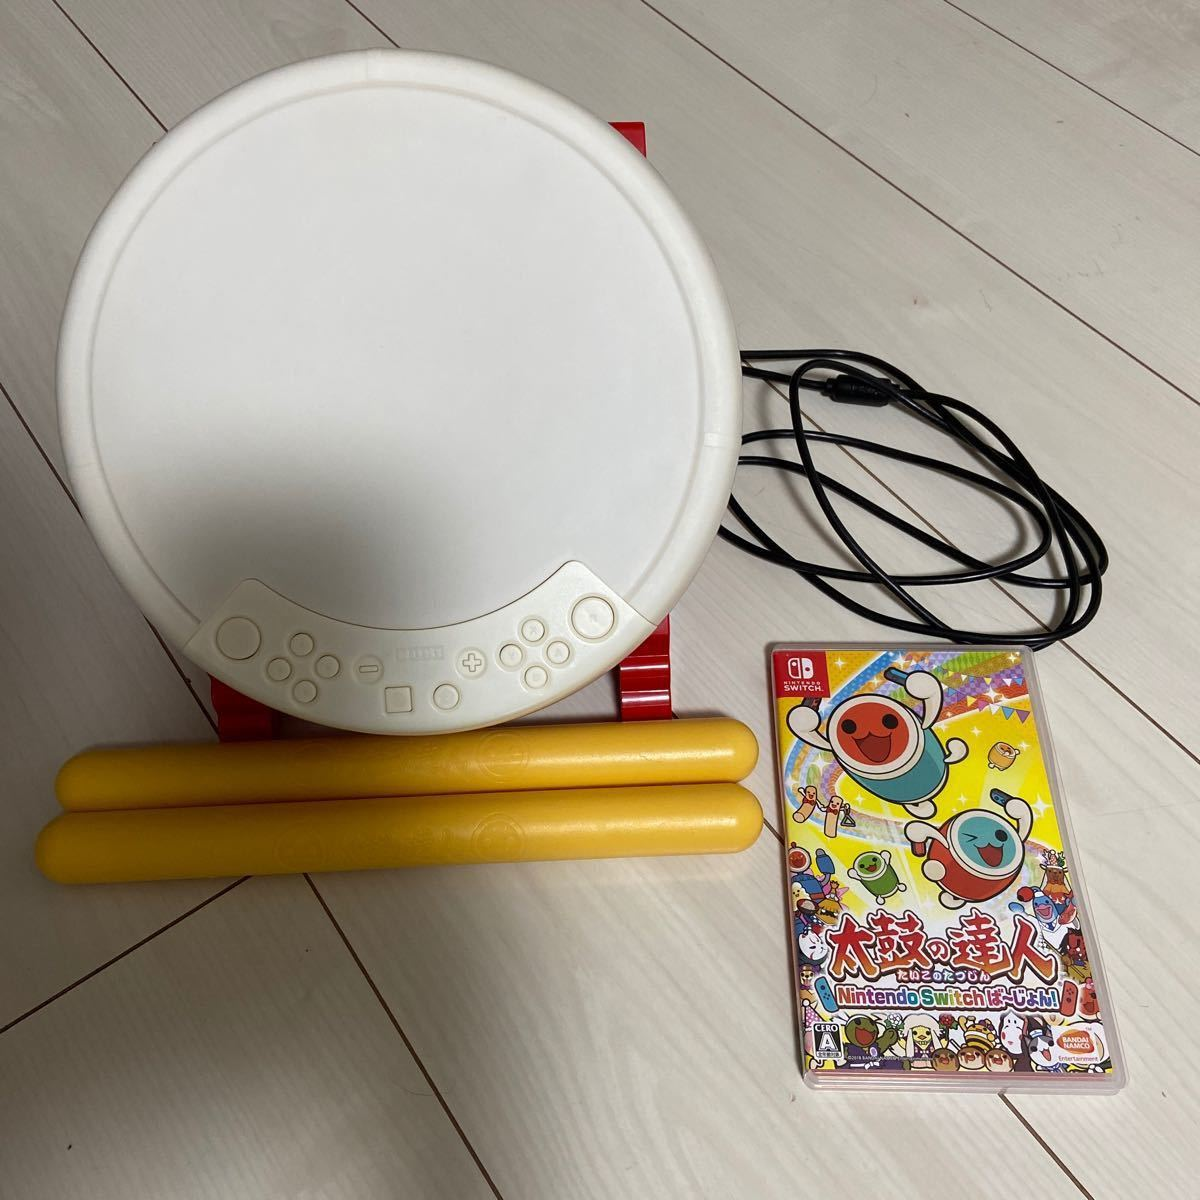 【Switch】太鼓の達人ソフト+専用コントローラー 太鼓とバチ